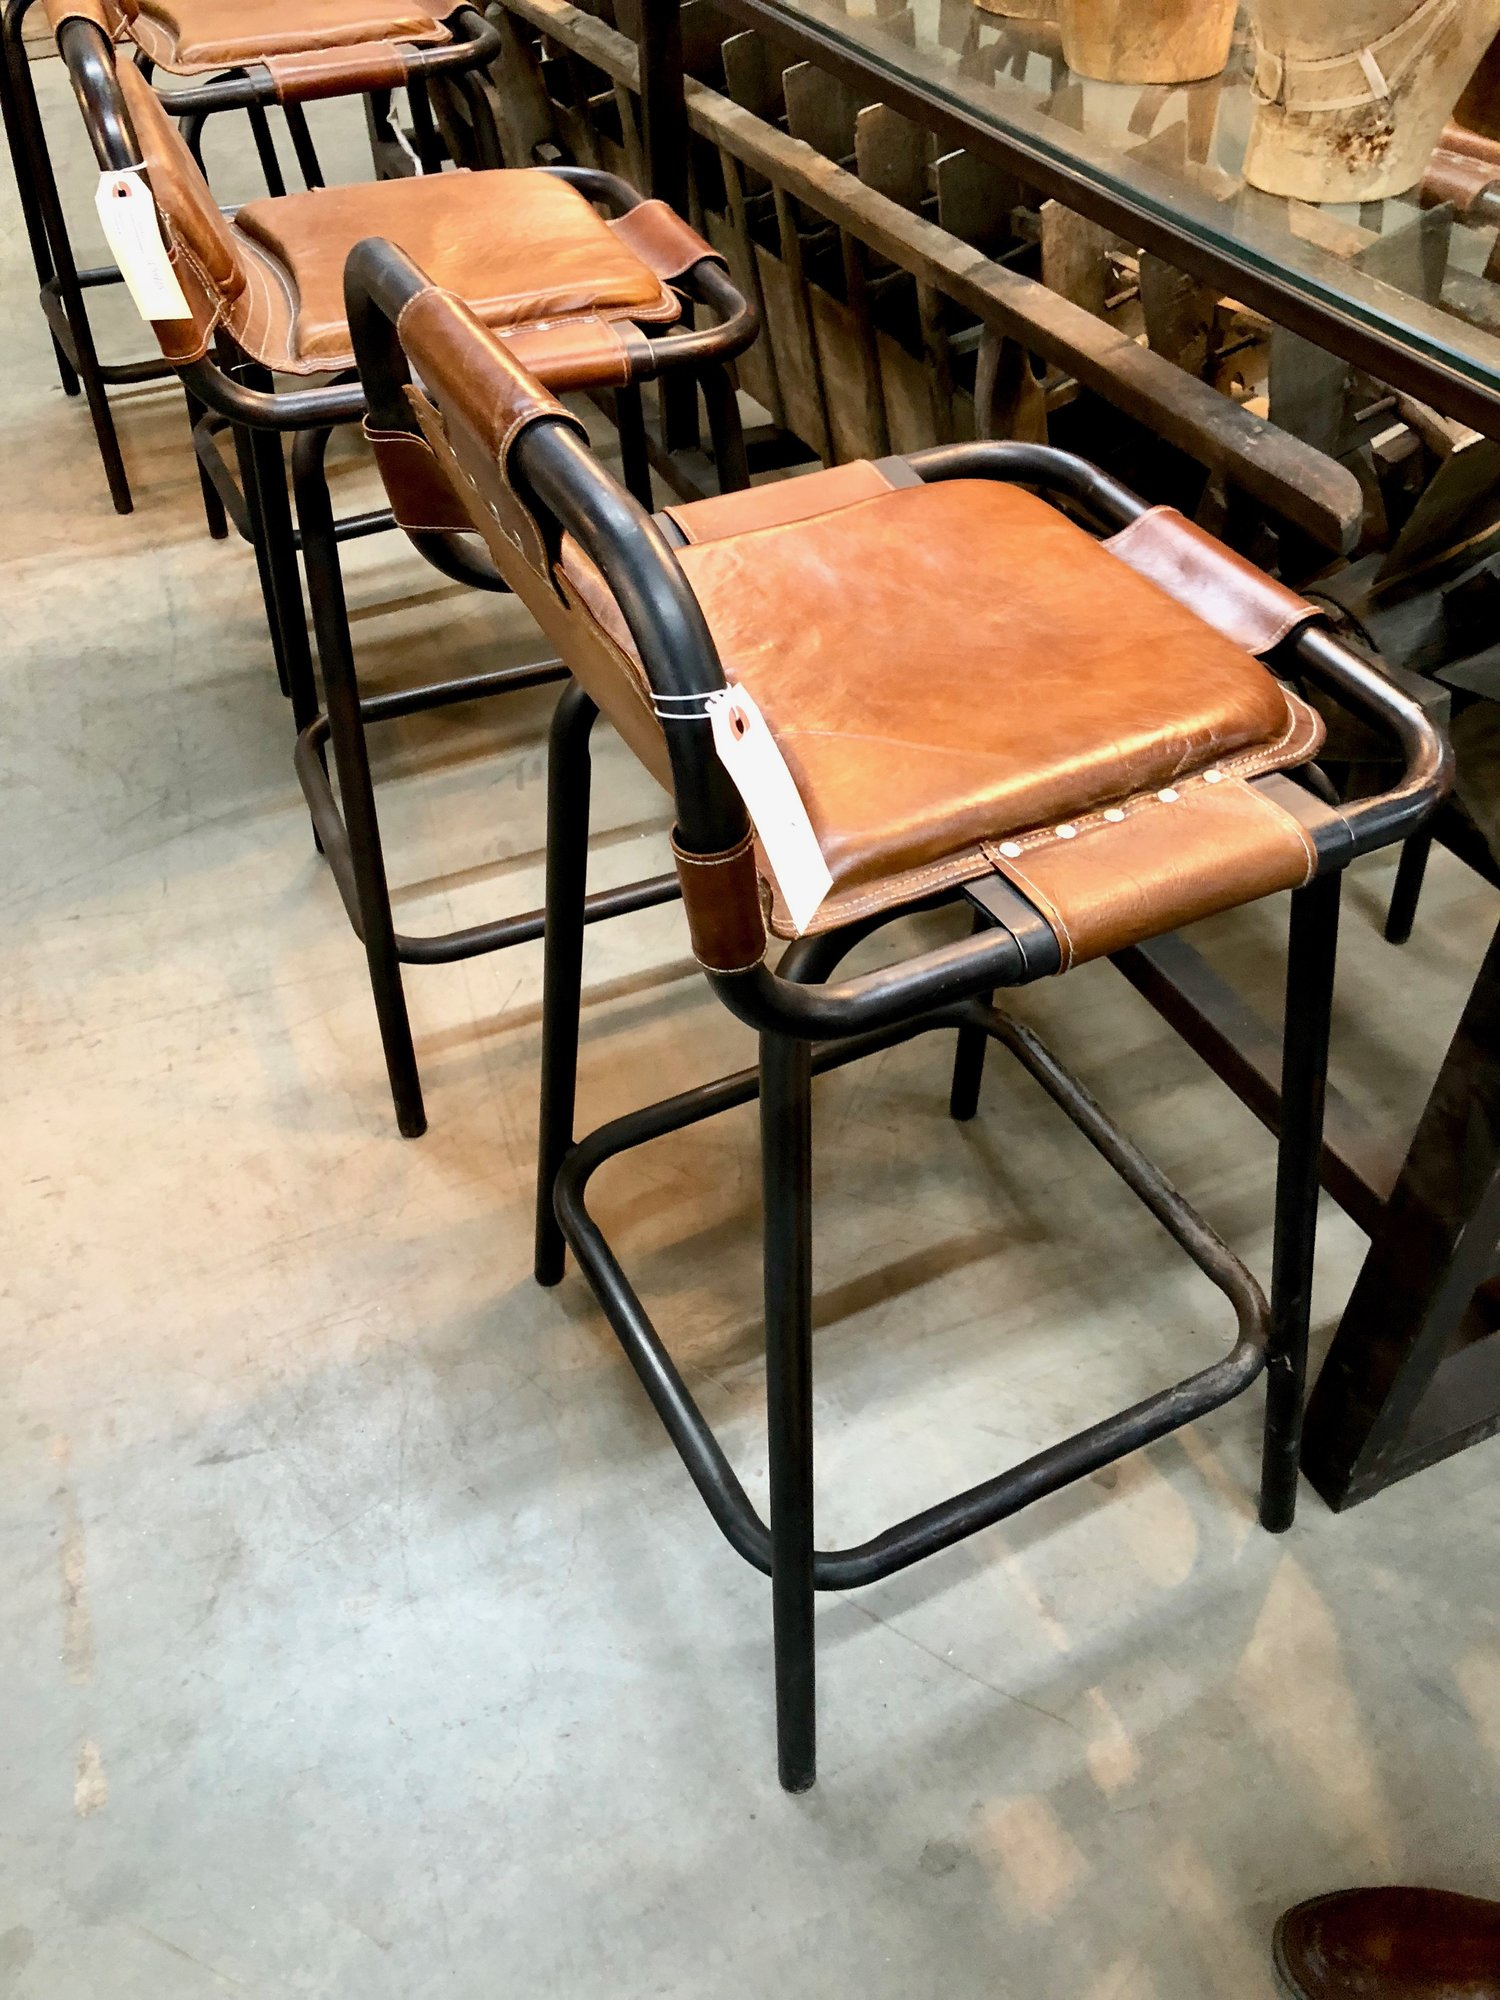 Vintage leather stools.